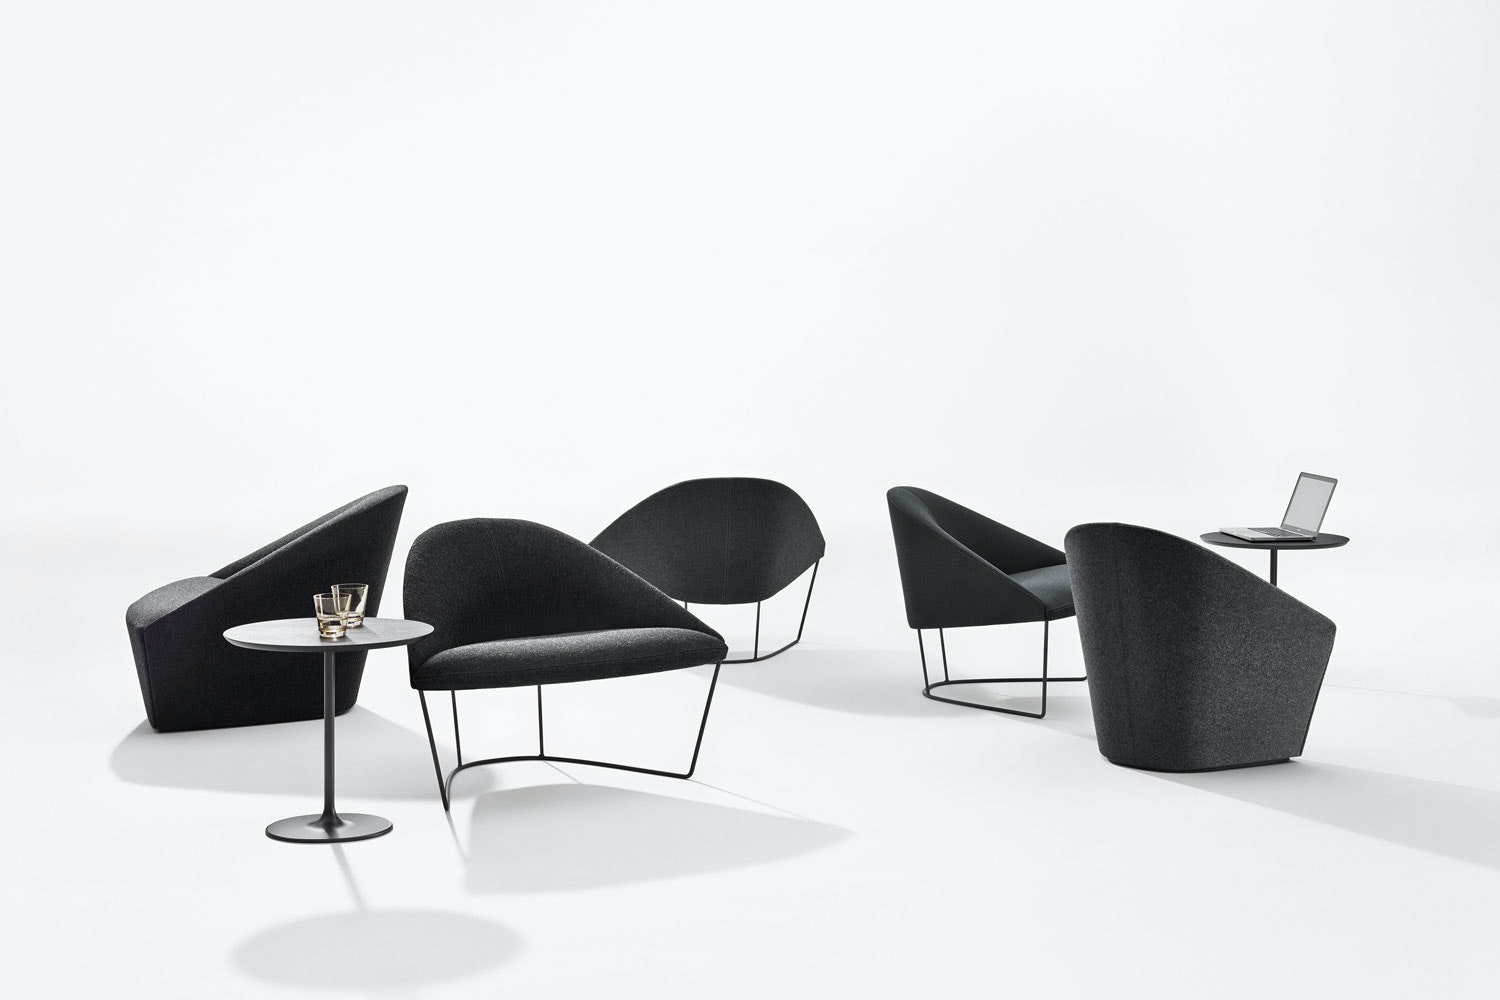 COLINA by Lievore Altherr Molina for Arper